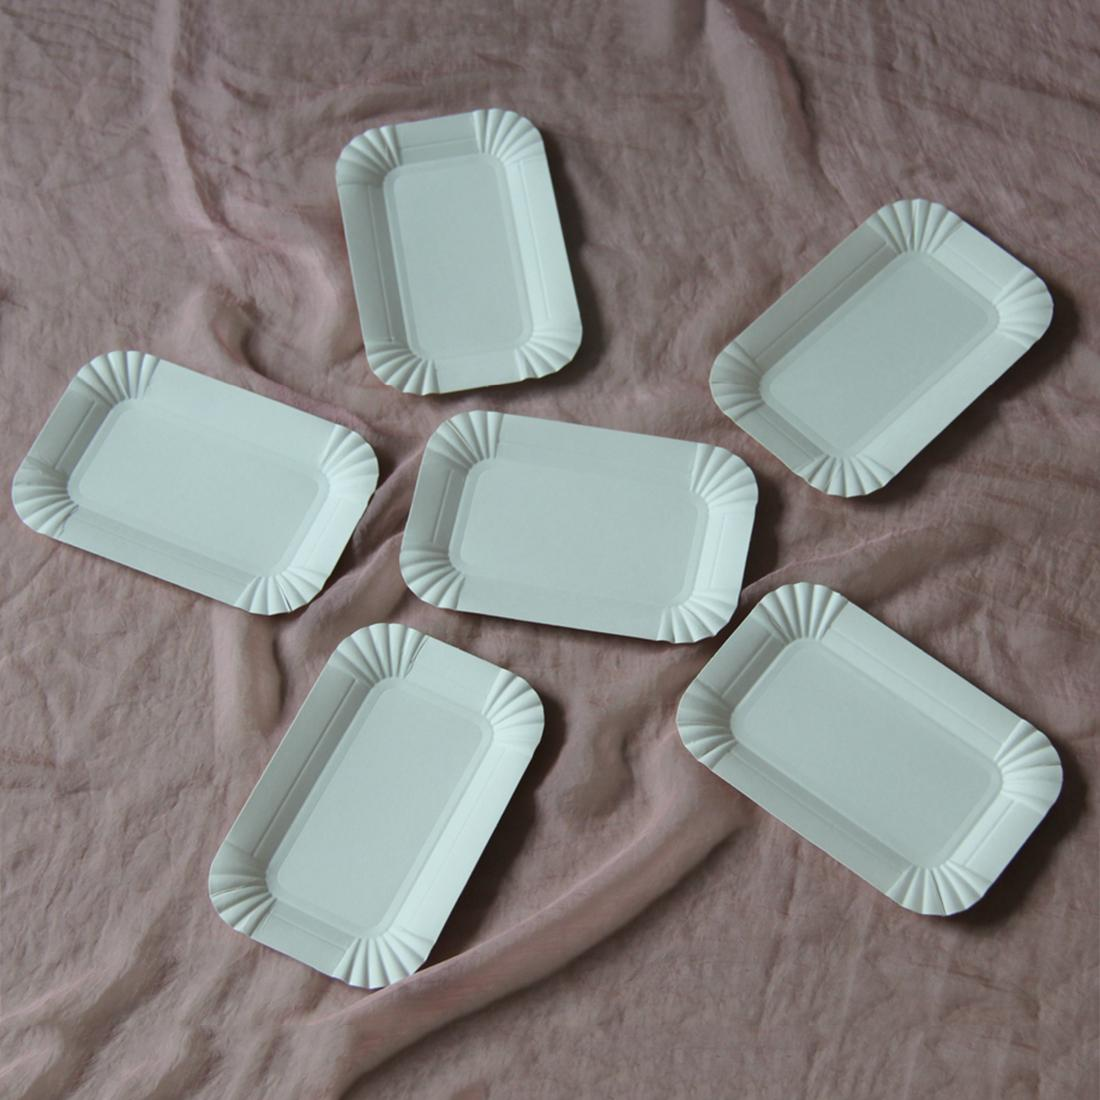 Online Cheap Wholesale Hot Selling Disposable Paper Plates Rectangular Dinnerware Paper Plates Festival Wedding Party Supplies By Sophine12 | Dhgate.Com & Online Cheap Wholesale Hot Selling Disposable Paper Plates ...